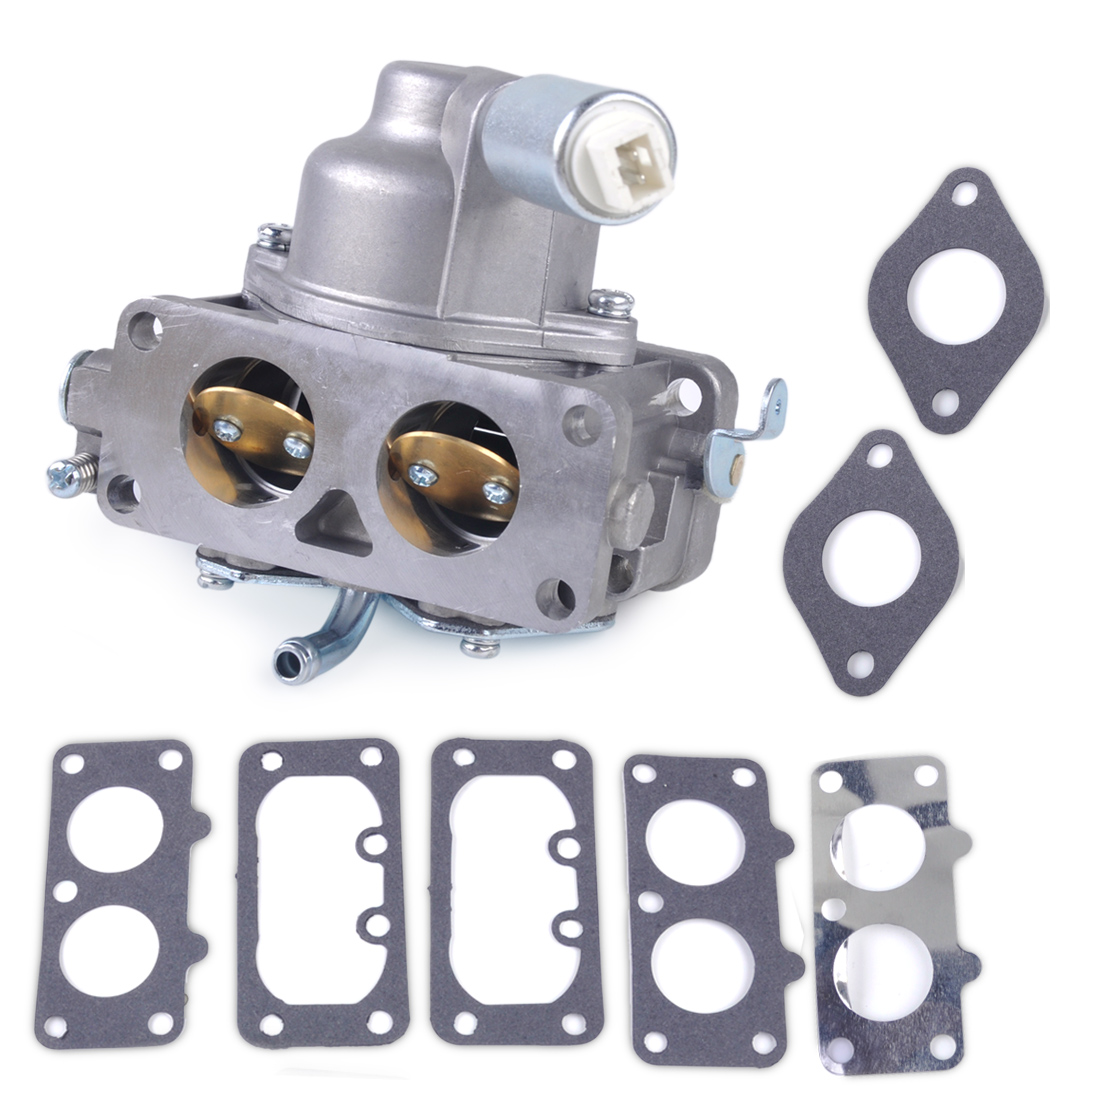 купить LETAOSK New Carburetor Replaces fit for Briggs & Stratton 791230 699709 499804 Manual Choke Accessories по цене 4247.8 рублей